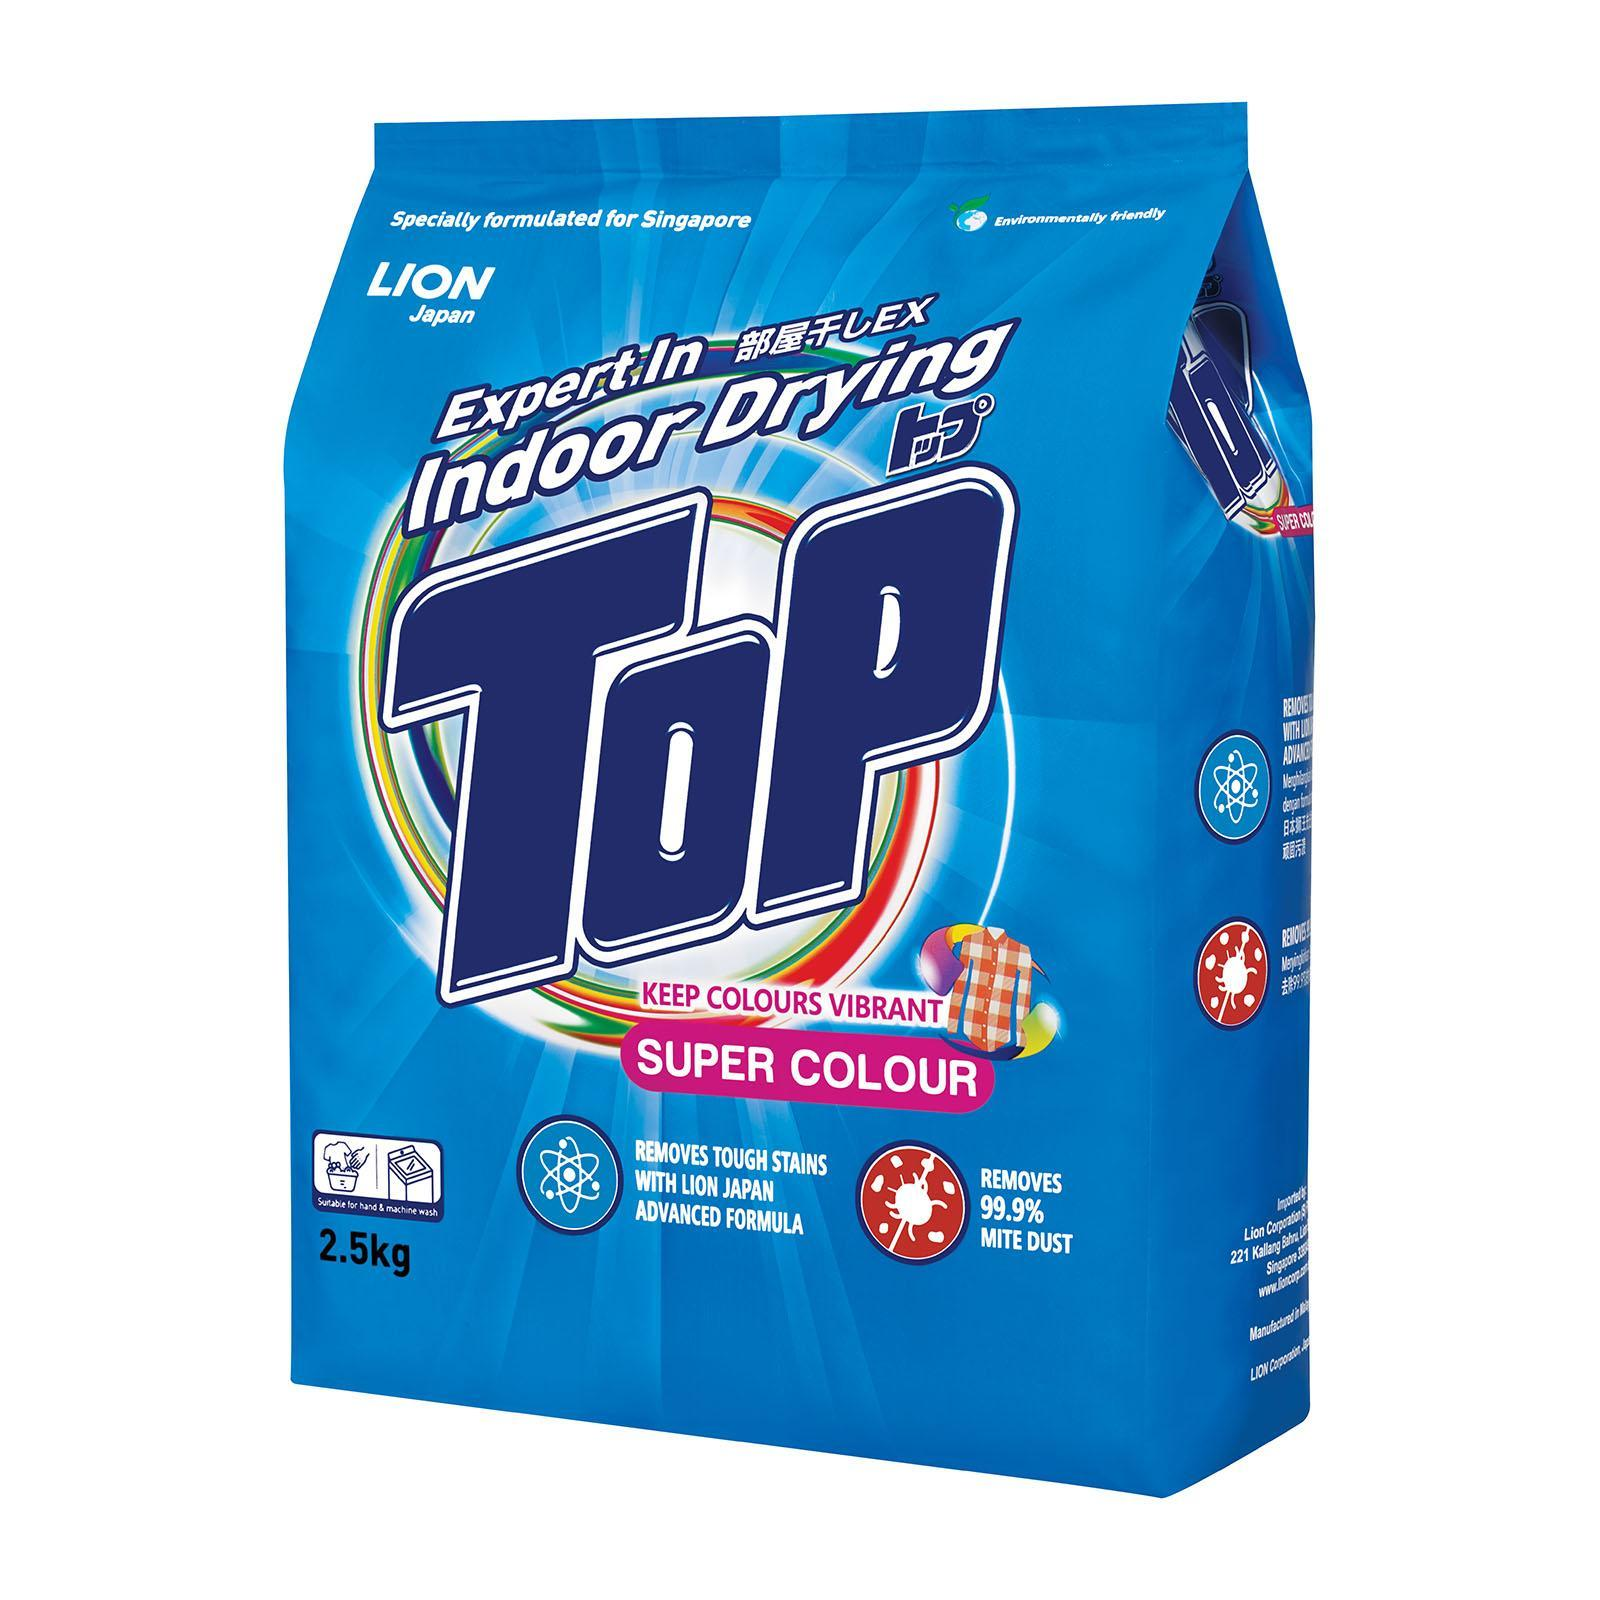 TOP Powder Detergent - Super Colour 2.5kg